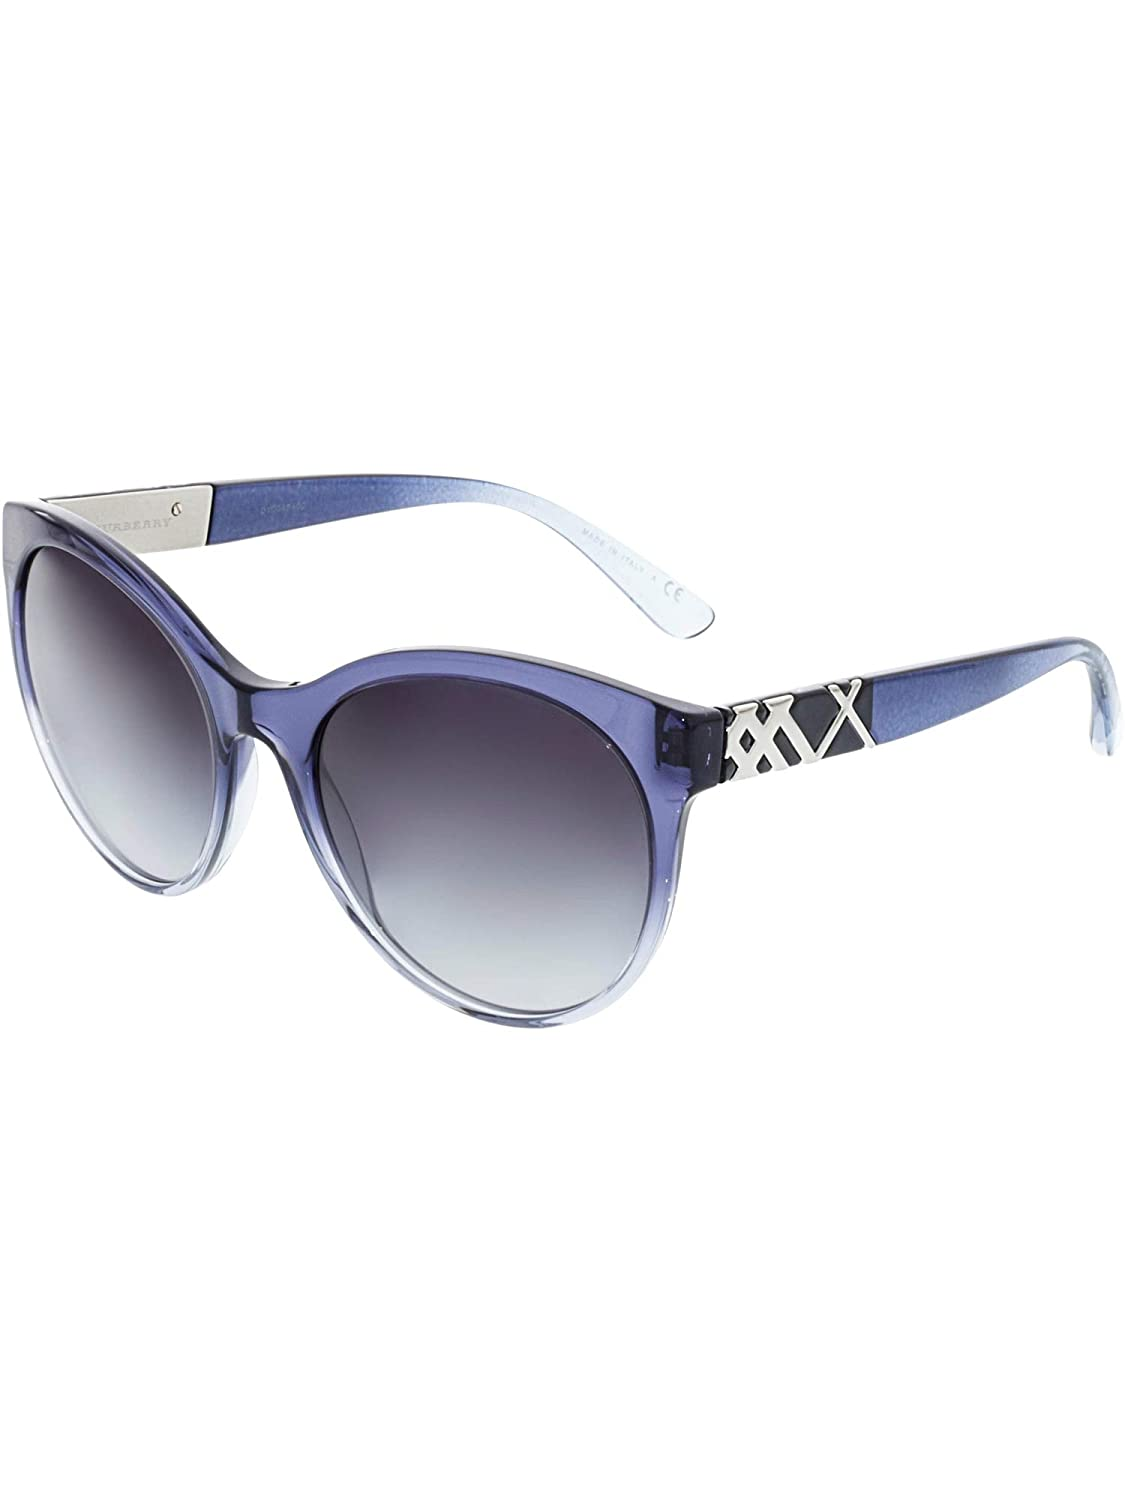 0389cb5f5e32 Burberry Women's BE4236 Sunglasses Blue Gradient/Grey Gradient 56mm at  Amazon Women's Clothing store: